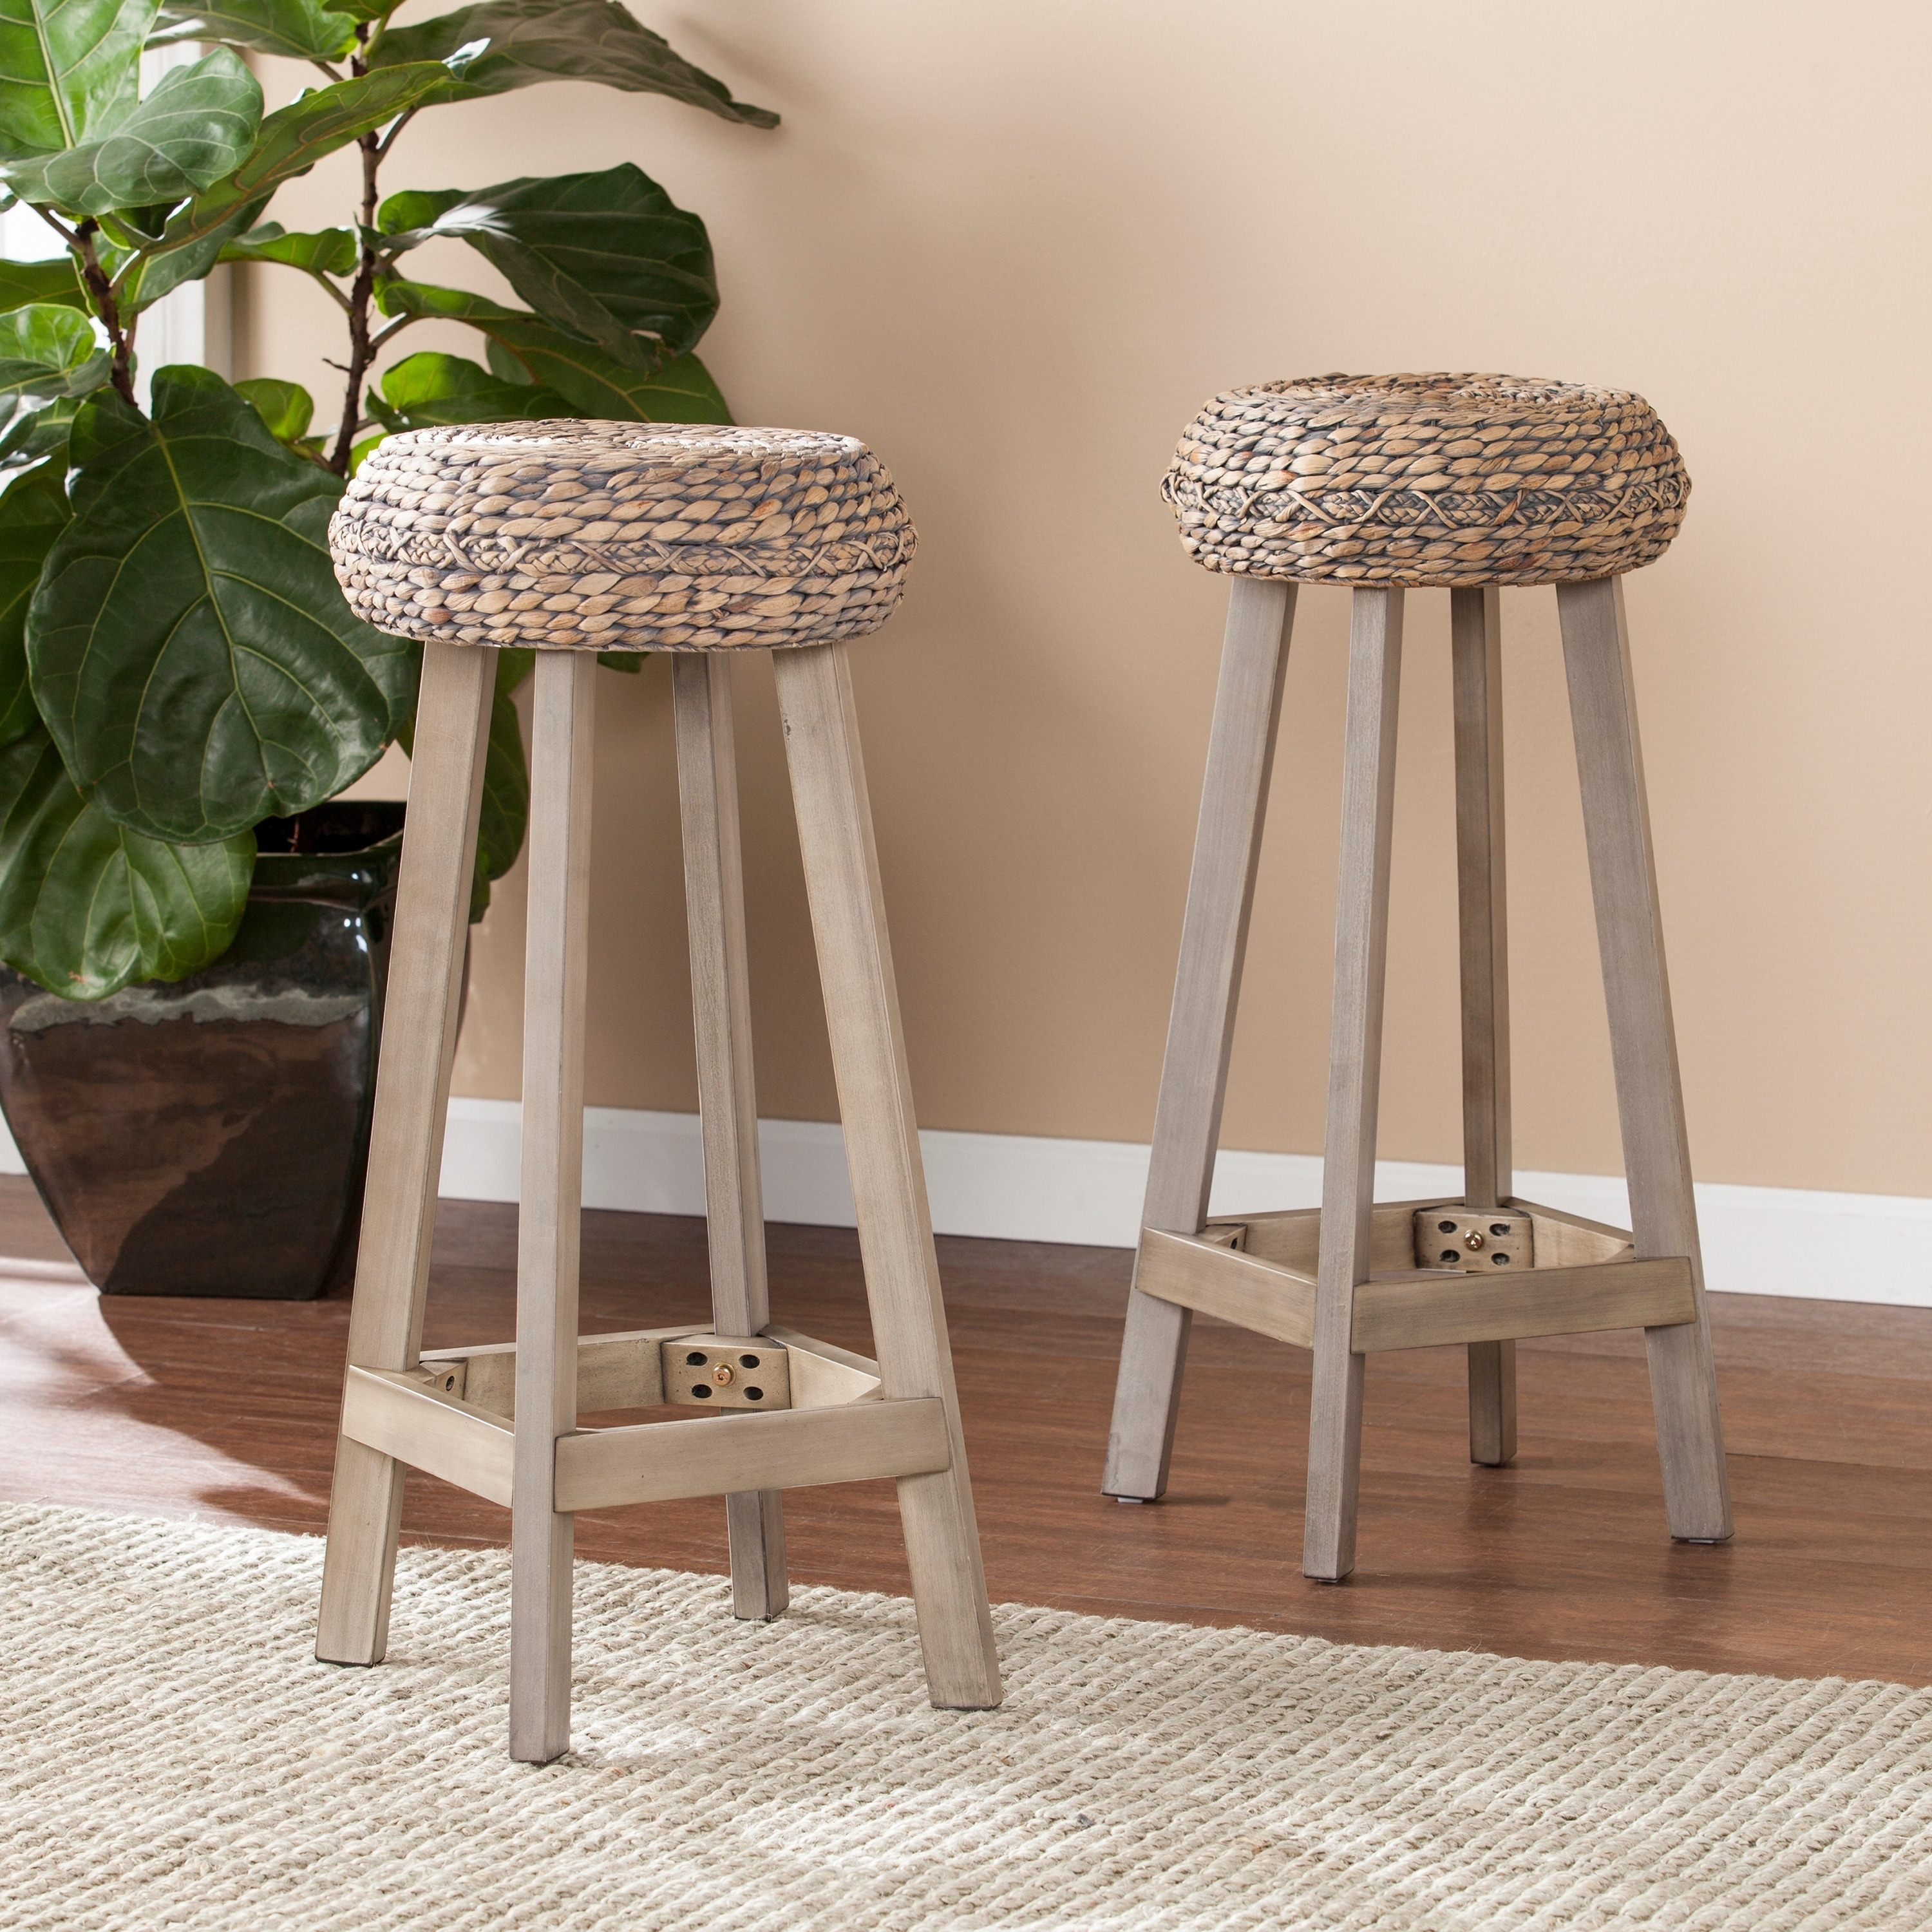 Remarkable The Curated Nomad Belize Backless Round Weathered Grey Barstool Set Of 2 Ncnpc Chair Design For Home Ncnpcorg